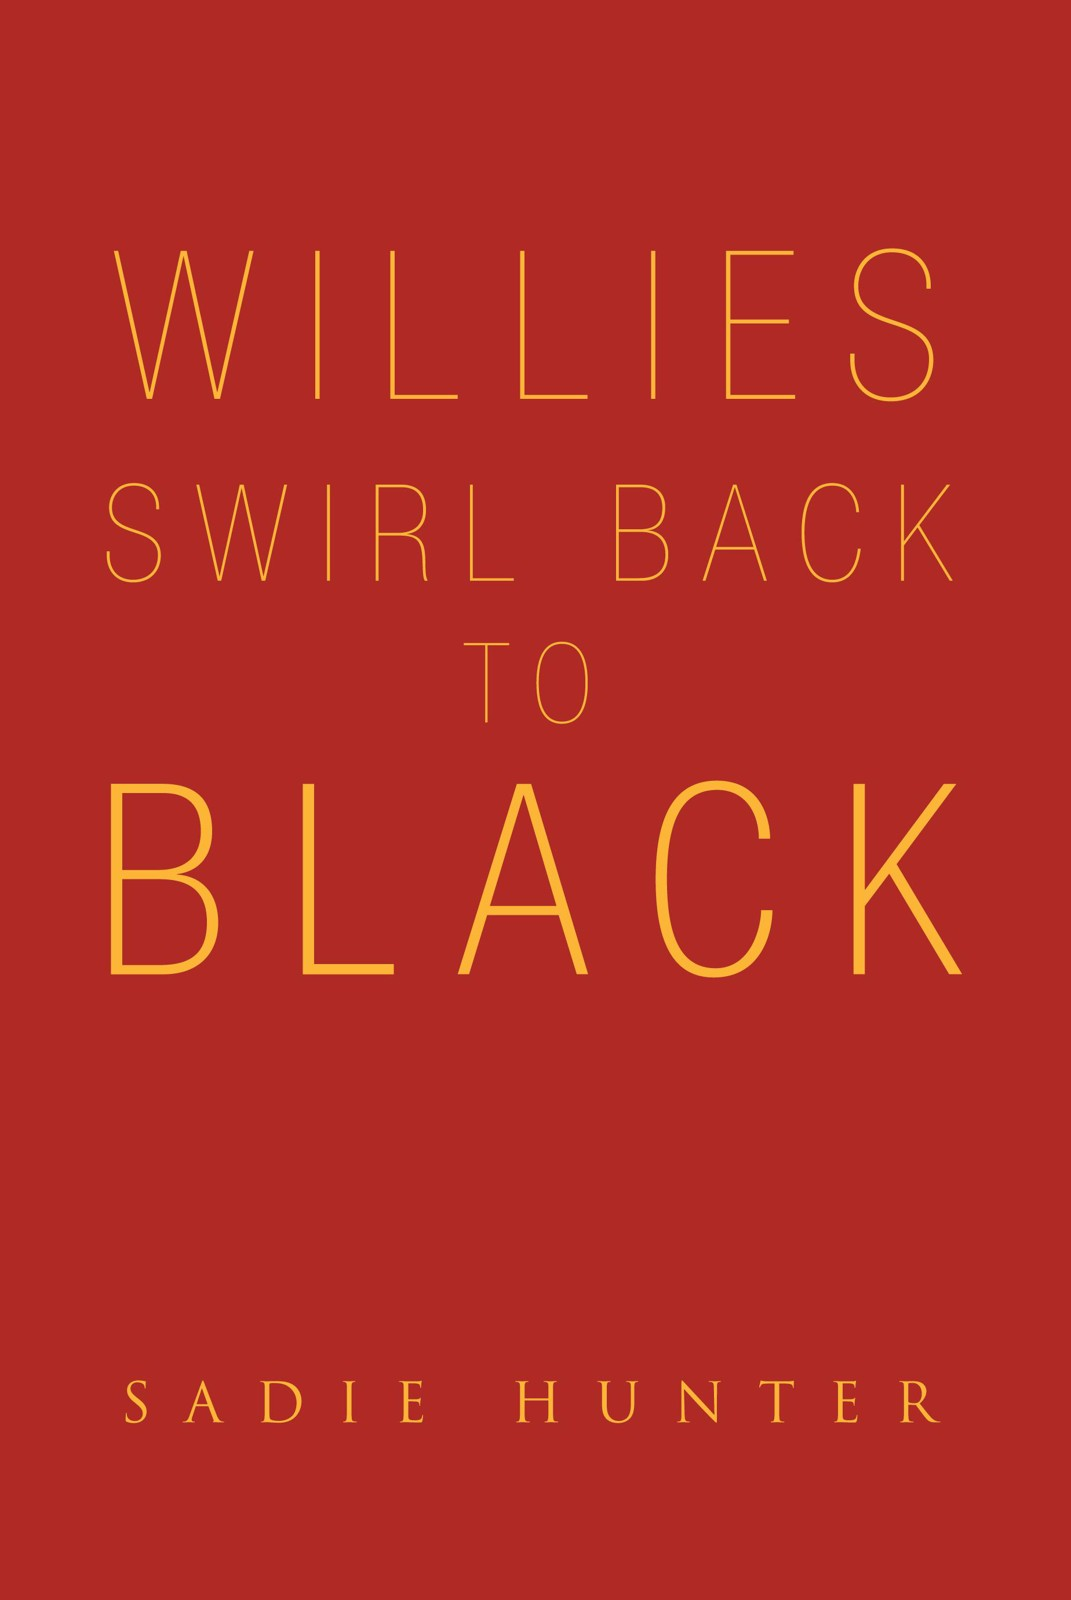 Willie's Swirl Back to Black